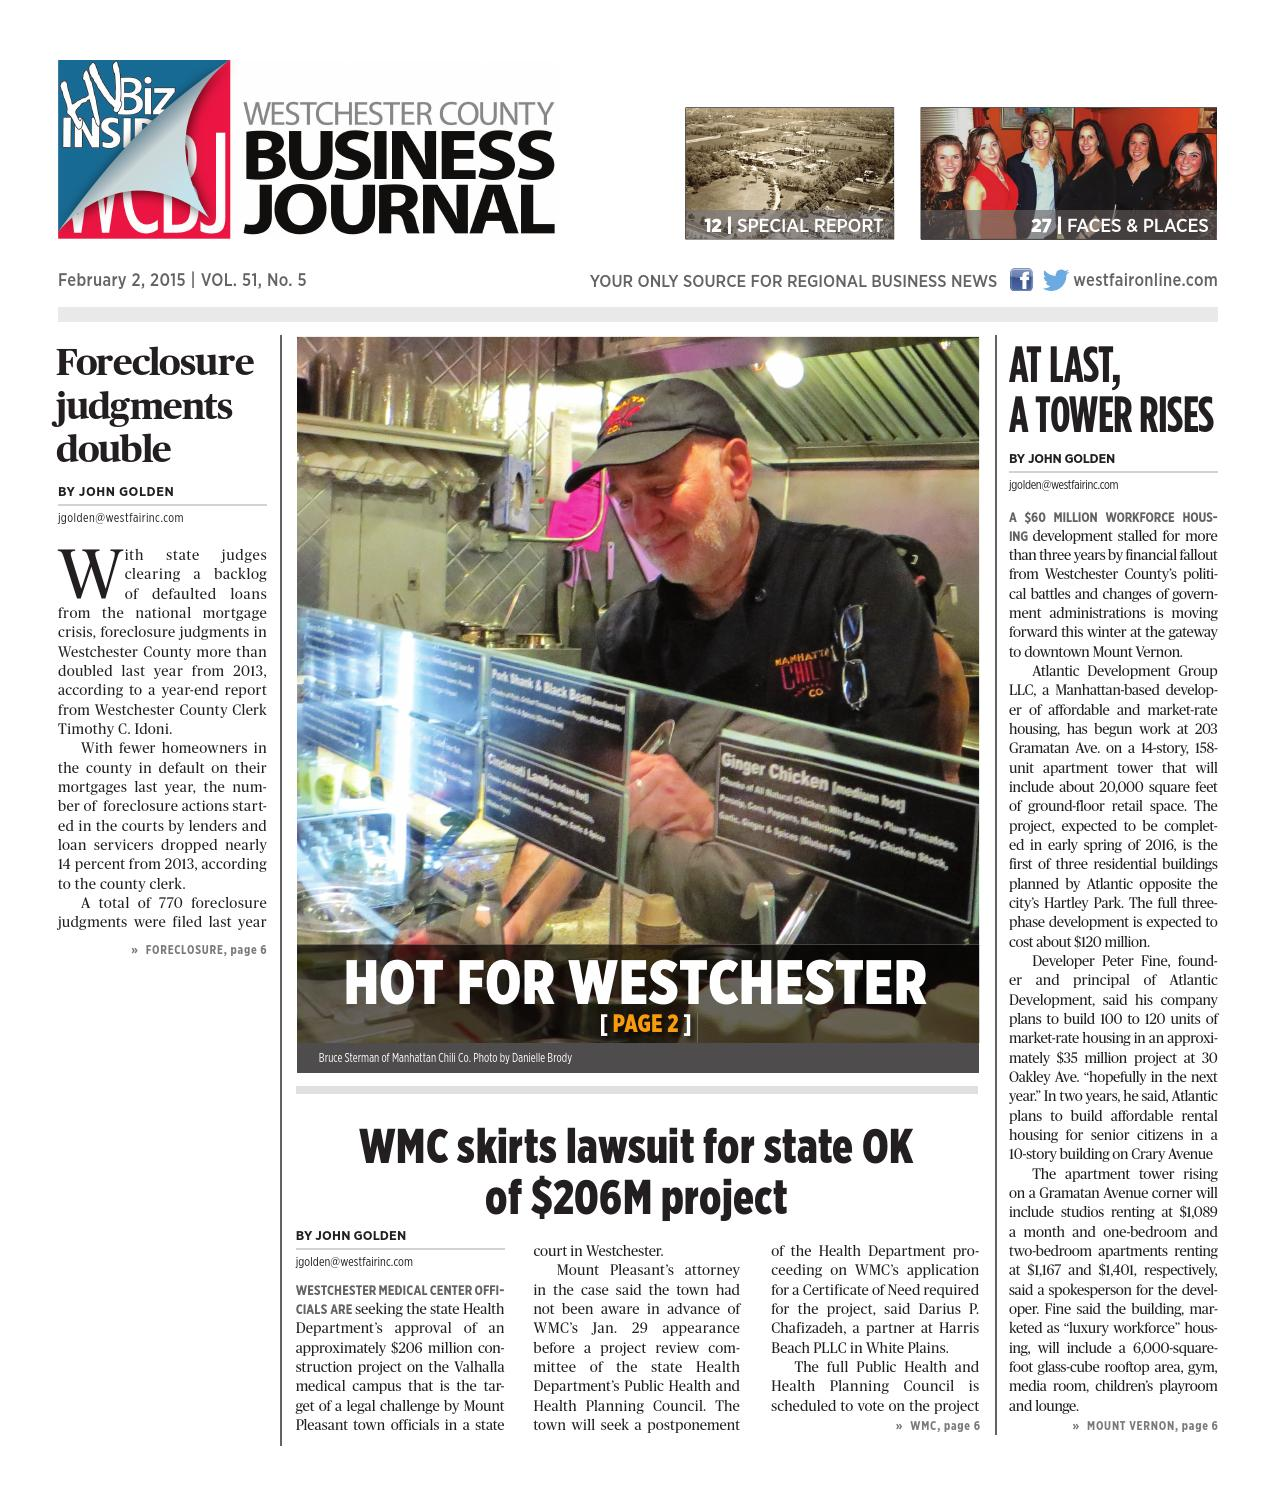 Cheap Apartments Near Journal Square: Westchester County Business Journal 020215 By Wag Magazine